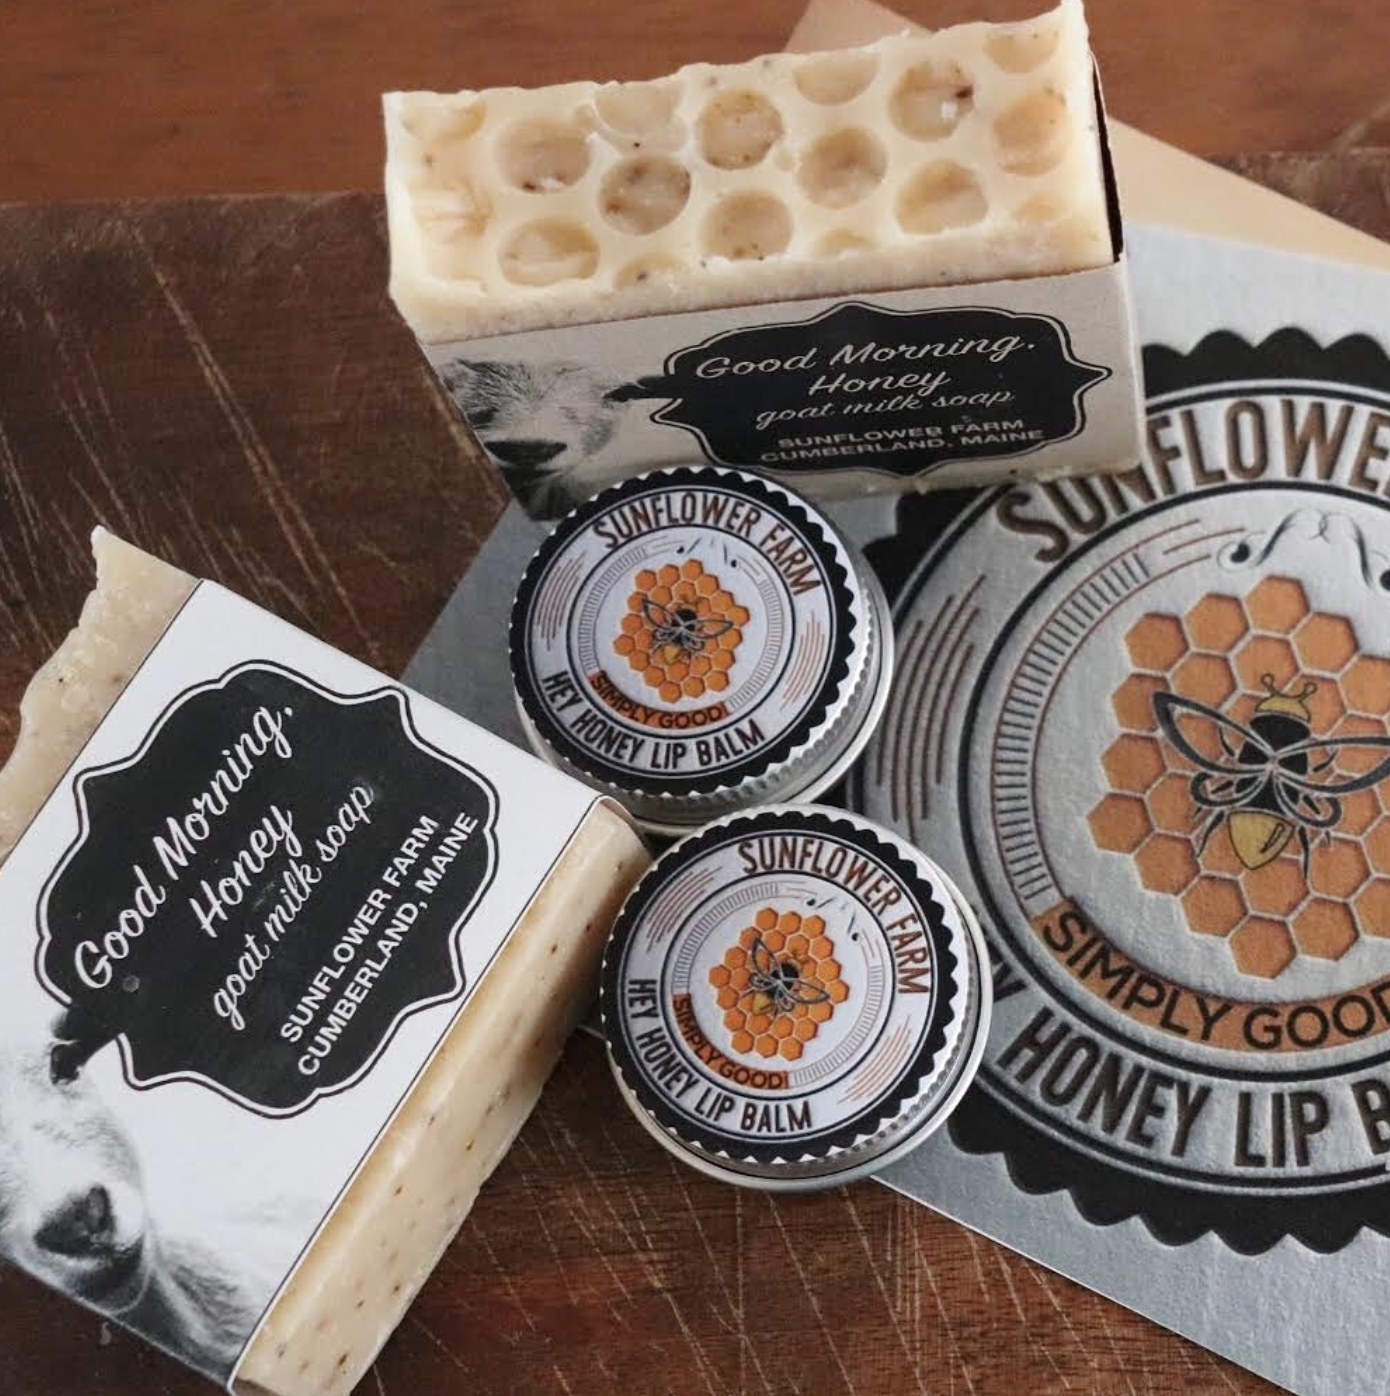 SUNFLOWER FARM GOOD MORNING HONEY SOAP- Since its ingredients are all tasty stuff you might eat for breakfast on a farm we think the name fits!    GOAT MILK  is the star of this amazing soap. The cream that is present in goat milk helps boost the moisturizing quality of goat milk soaps. We use late lactation milk which is super high in  butterfat . Goat milk soap will not dry your skin out like many other soaps. Goat milk contains  alpha-hydroxy acids  which help remove dead skin cells from your skin. Goat milk is high in  Vitamin A , which helps repair damaged skin tissue. Vitamin A can help to reduce lines and wrinkles, control acne, and provide some psoriasis relief. Goat milk also contains Selenium which has been shown to have an important role in preventing skin cancer.  Selenium  can also help prevent damage to the skin from excessive time in the sun. Many areas in the Northeast have pastures low in selenium. We supplement our herd with Selenium and copper for their health and soap rich in good minerals is the bonus!    COCONUT OIL : The fatty acids found in coconut oil have antimicrobial properties that effectively kill bacteria and fungi.  HONEY : Honey is naturally antibacterial, so it's great for acne treatment and prevention. Honey is also full of antioxidants, which are great for slowing down aging. It is extremely moisturizing and soothing, so it helps create a glow.  OLIVE OIL : Olive oil contains antioxidants that fight free-radical damage and an ingredient called squalene, which is extremely hydrating.  COFFEE GROUNDS : The exfoliating properties of coffee will certainly make your skin soft and smooth  OATMEAL : Oatmeal contains zinc that is said to reduce inflammation and kill the acne-causing bacterial action. It also helps to soak up the excess oil from the skin that may trigger acne.